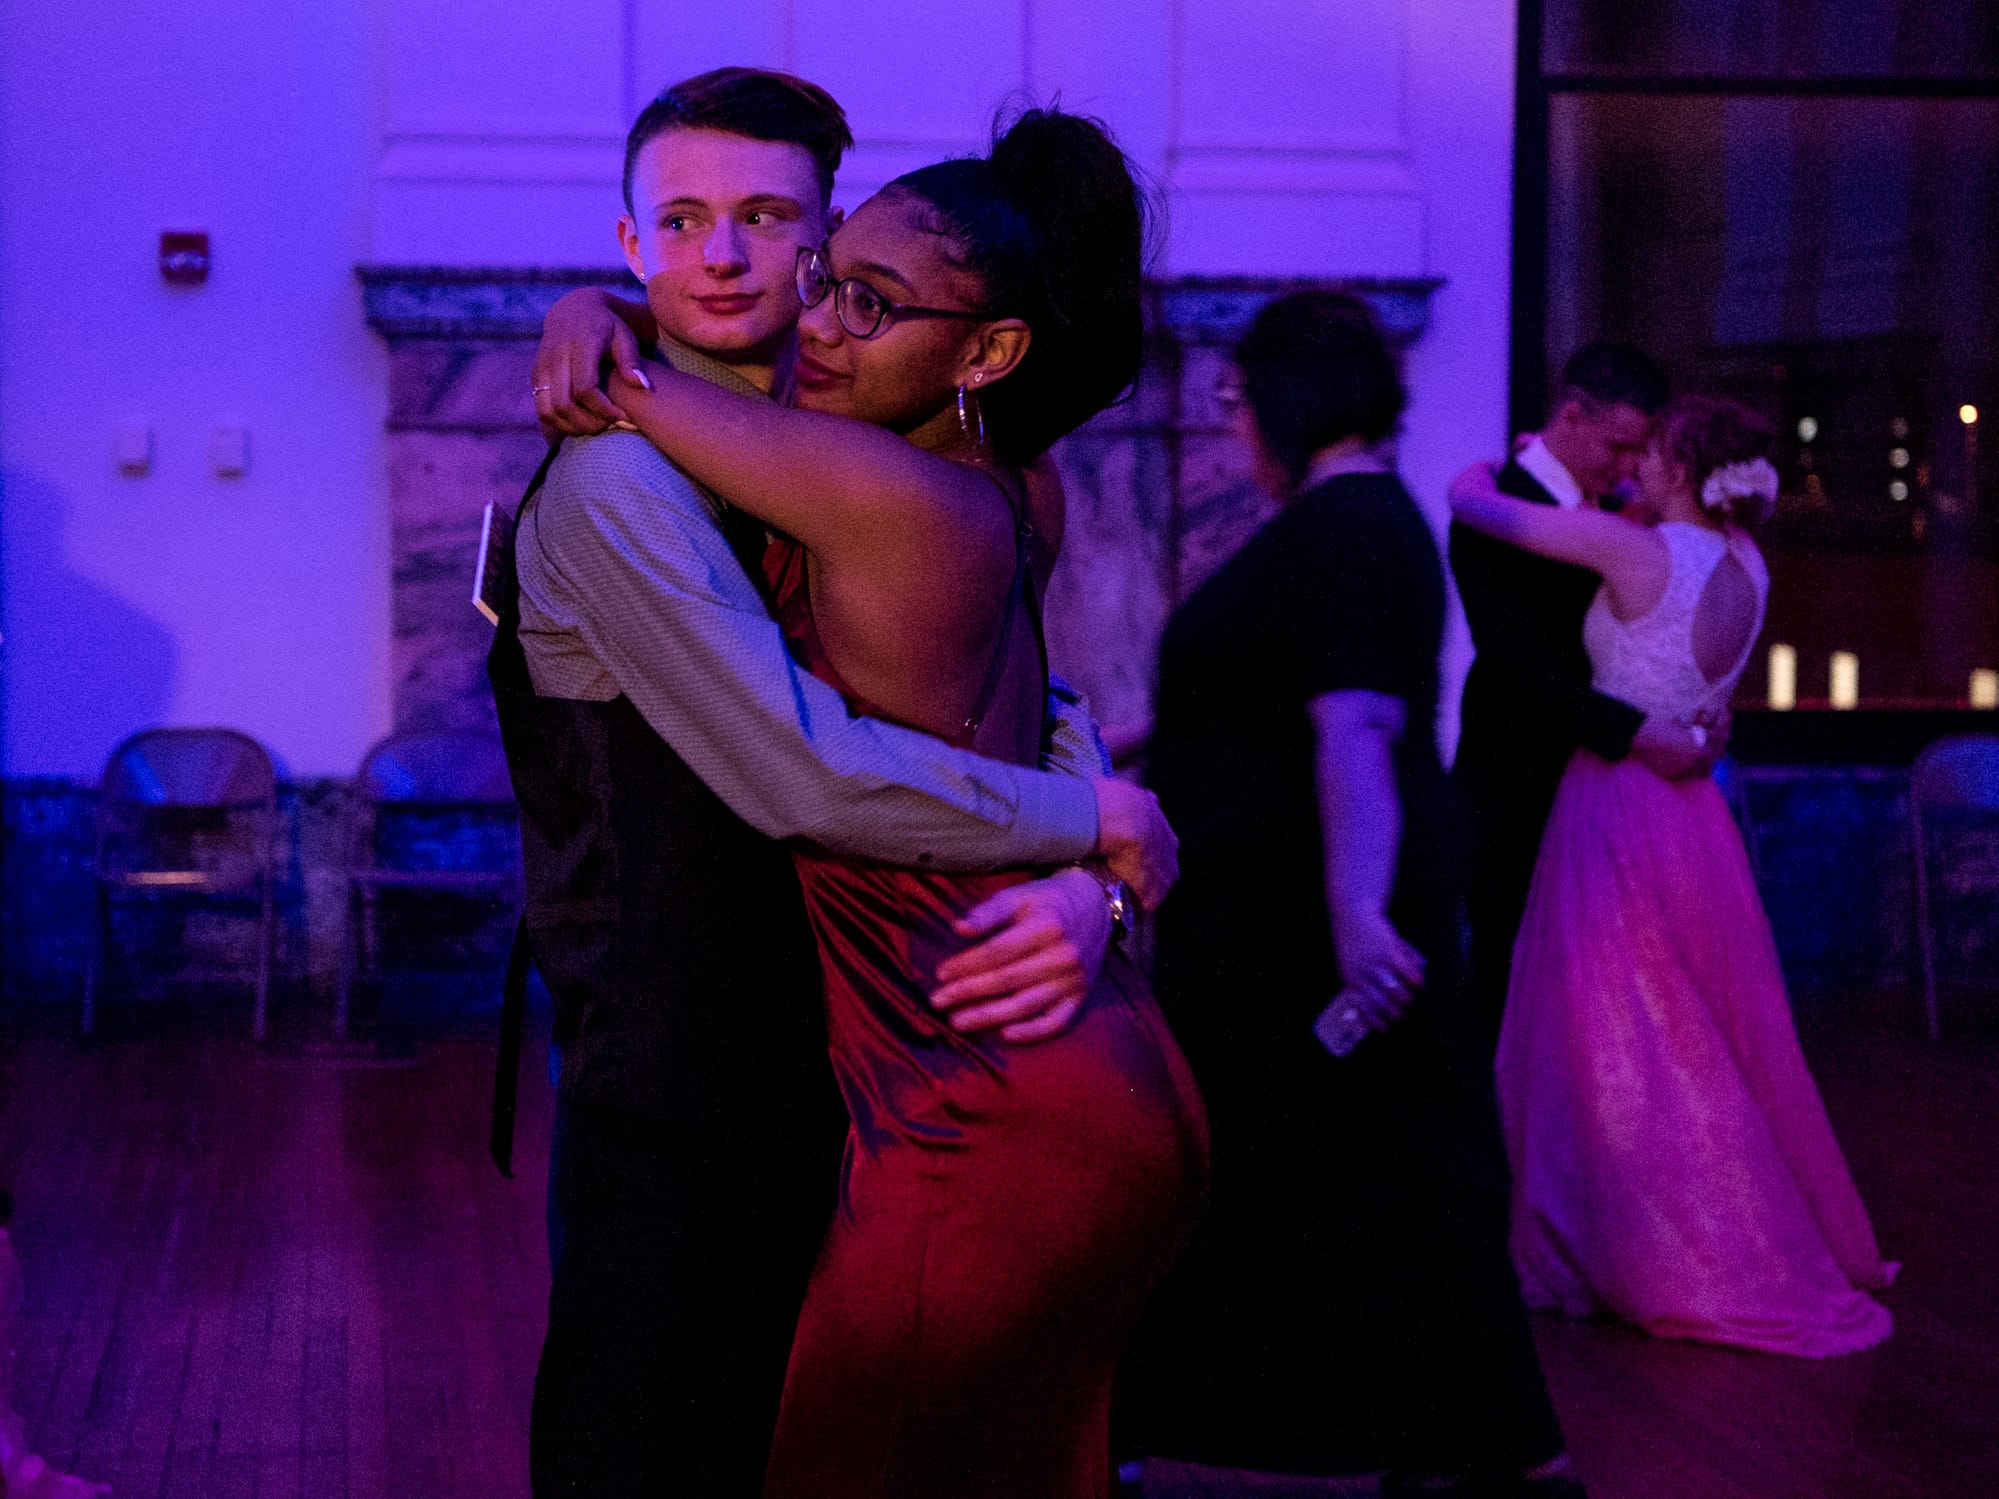 Peyton Lamar, front left, embraces his date Maleaya Labrador, front right, during a slow song at the dance held inside the Old Vanderburgh County Courthouse in downtown Evansville, Ind., Saturday, April 6, 2019.